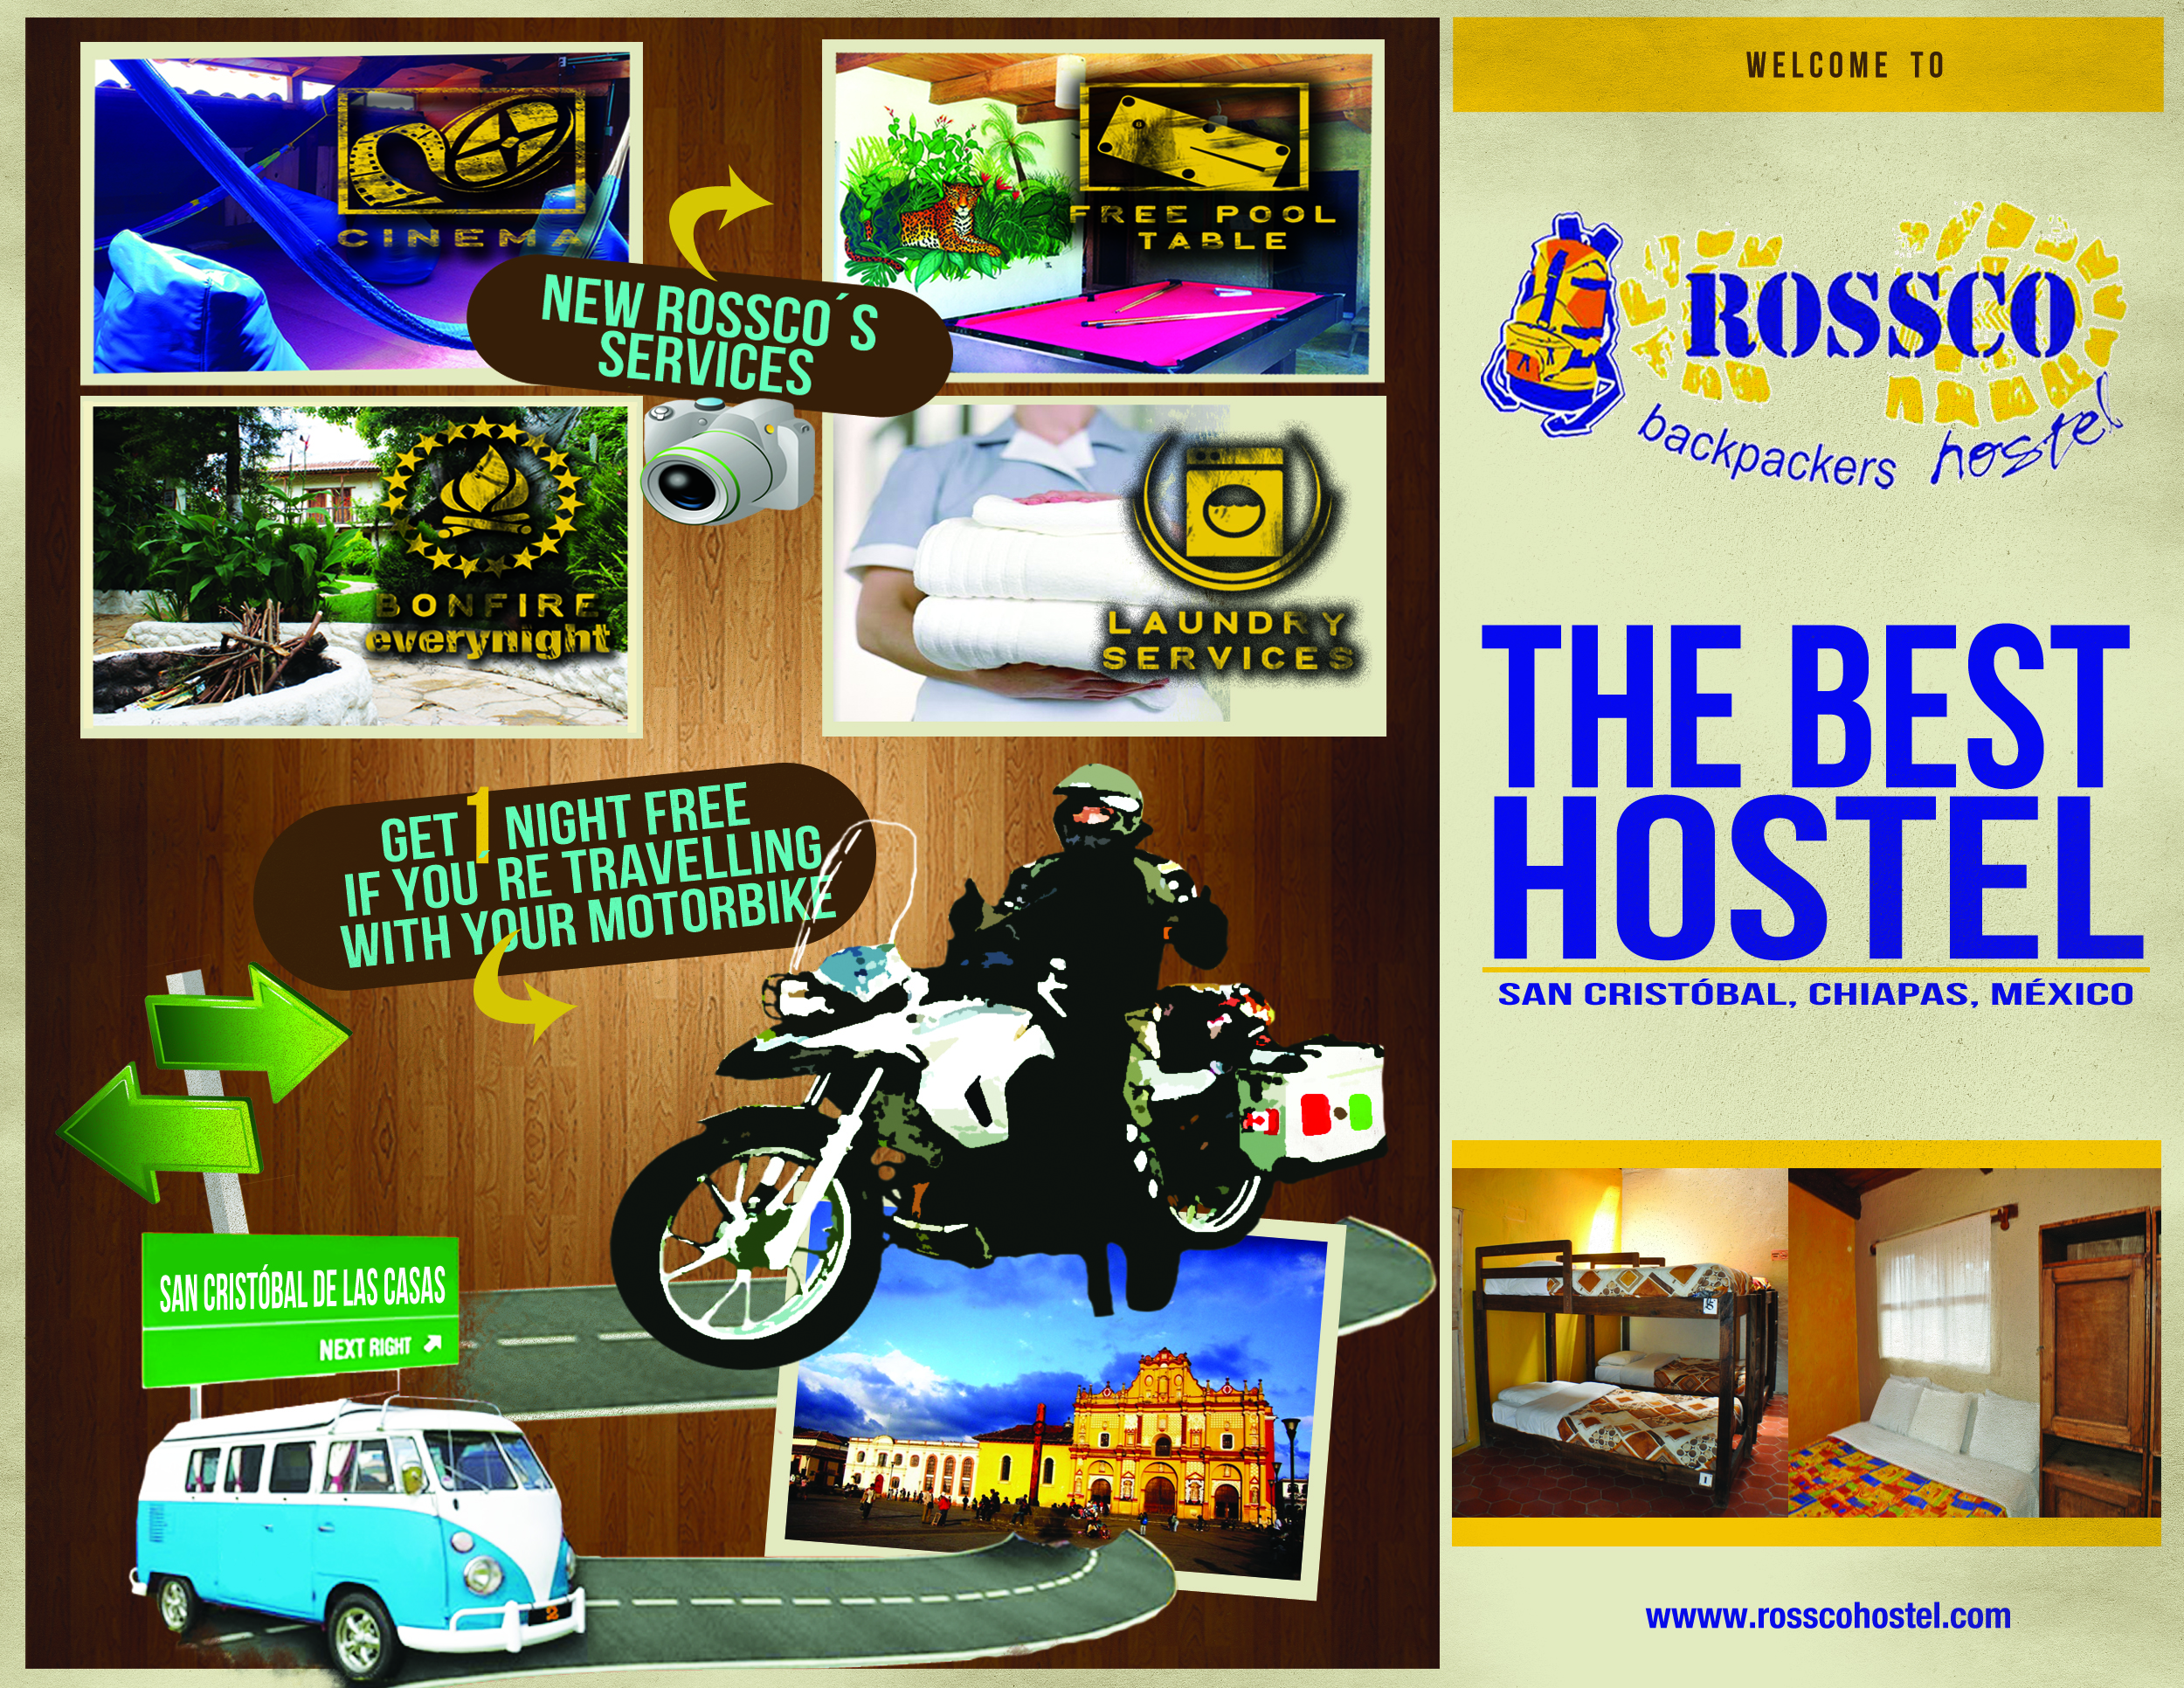 Rossco Backpackers Hostel